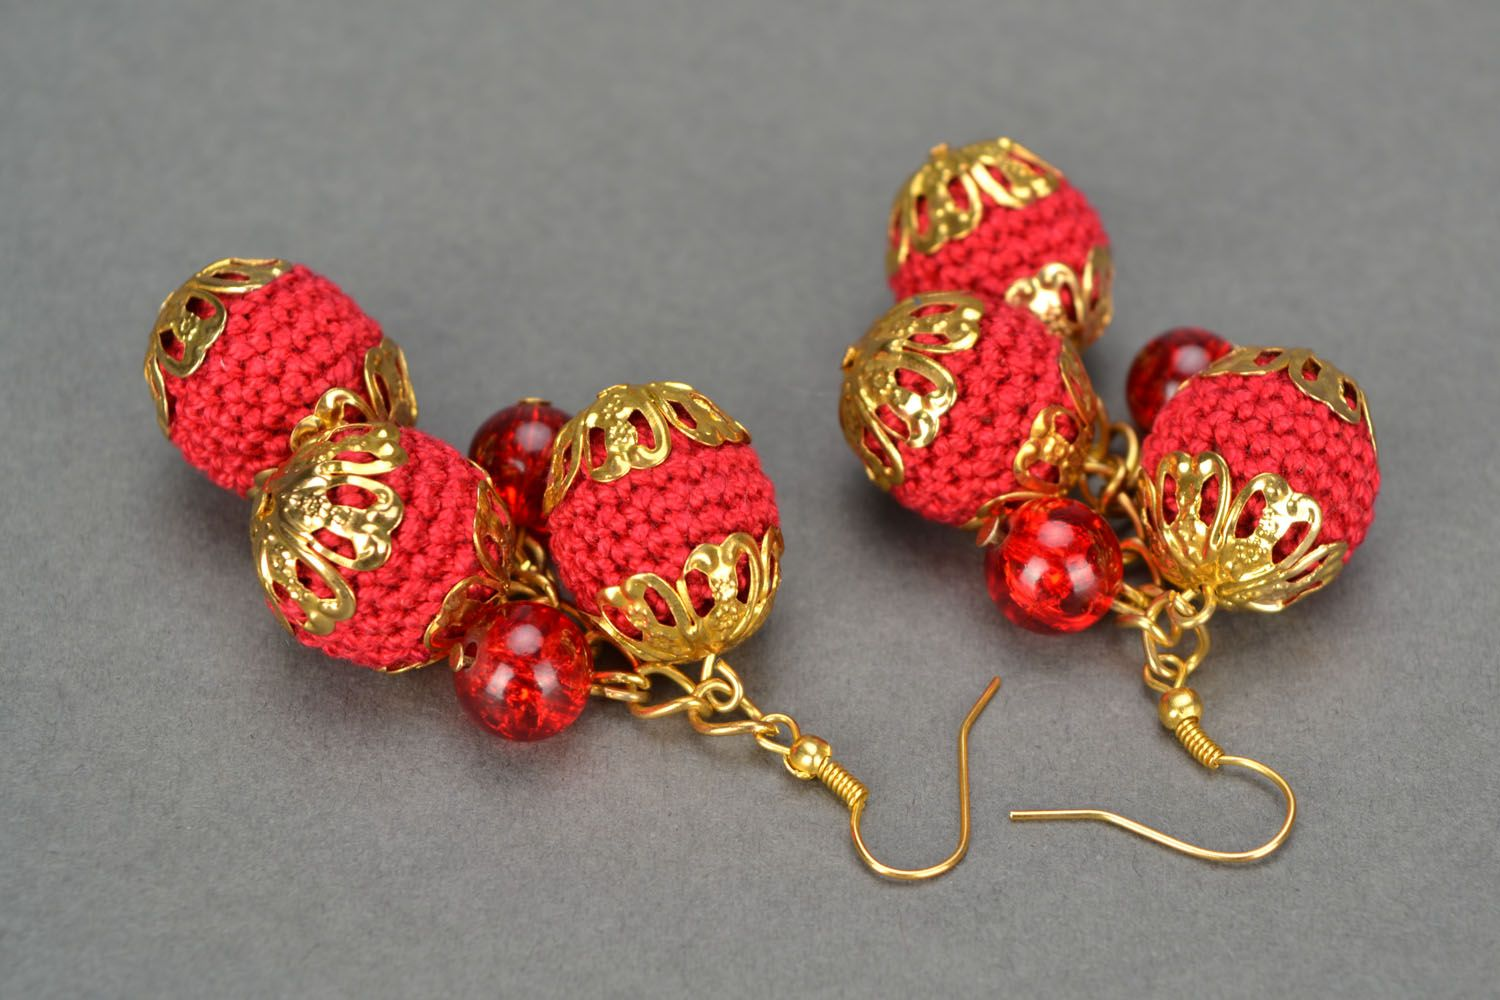 Crochet earrings with charms Cherry Glamor photo 4